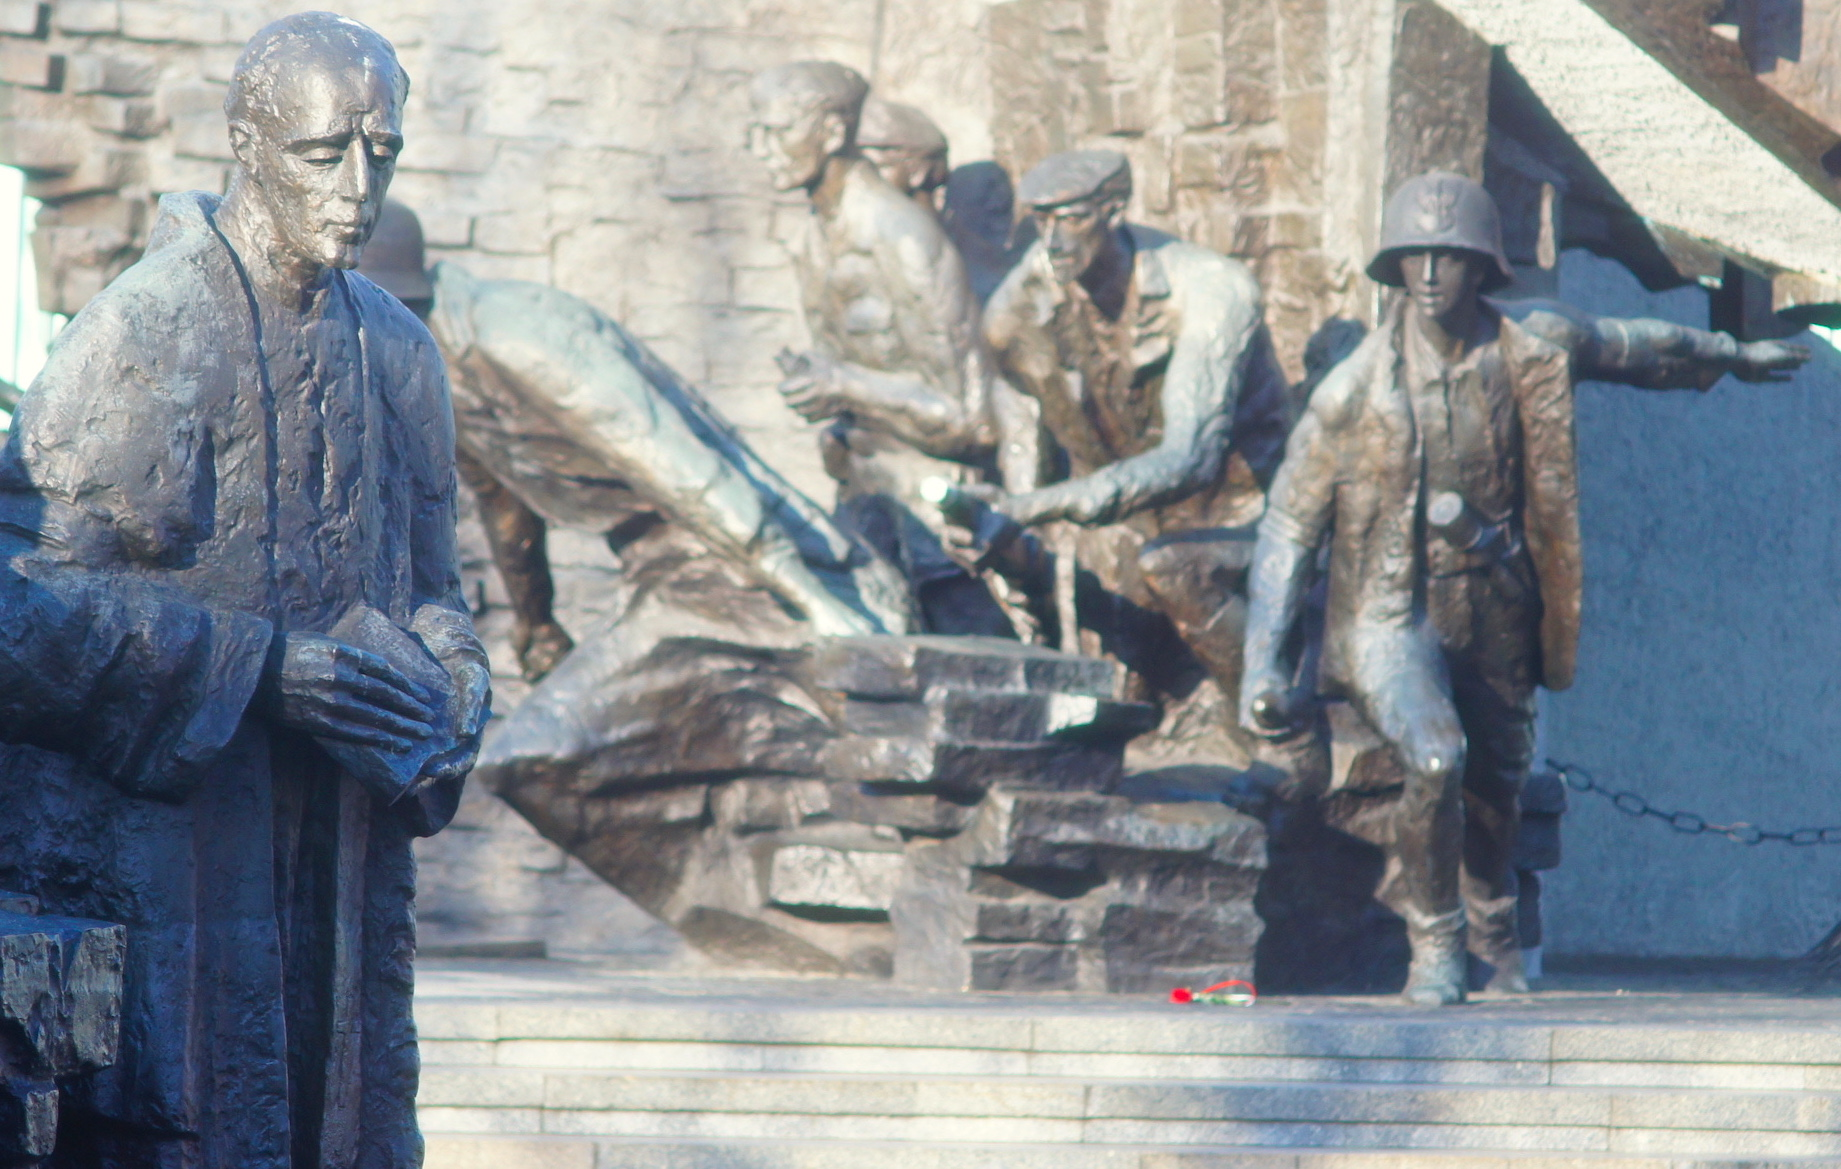 Warsaw Uprising memorial in Krasiński Square, Warsaw. Photo: Marius I. Bența